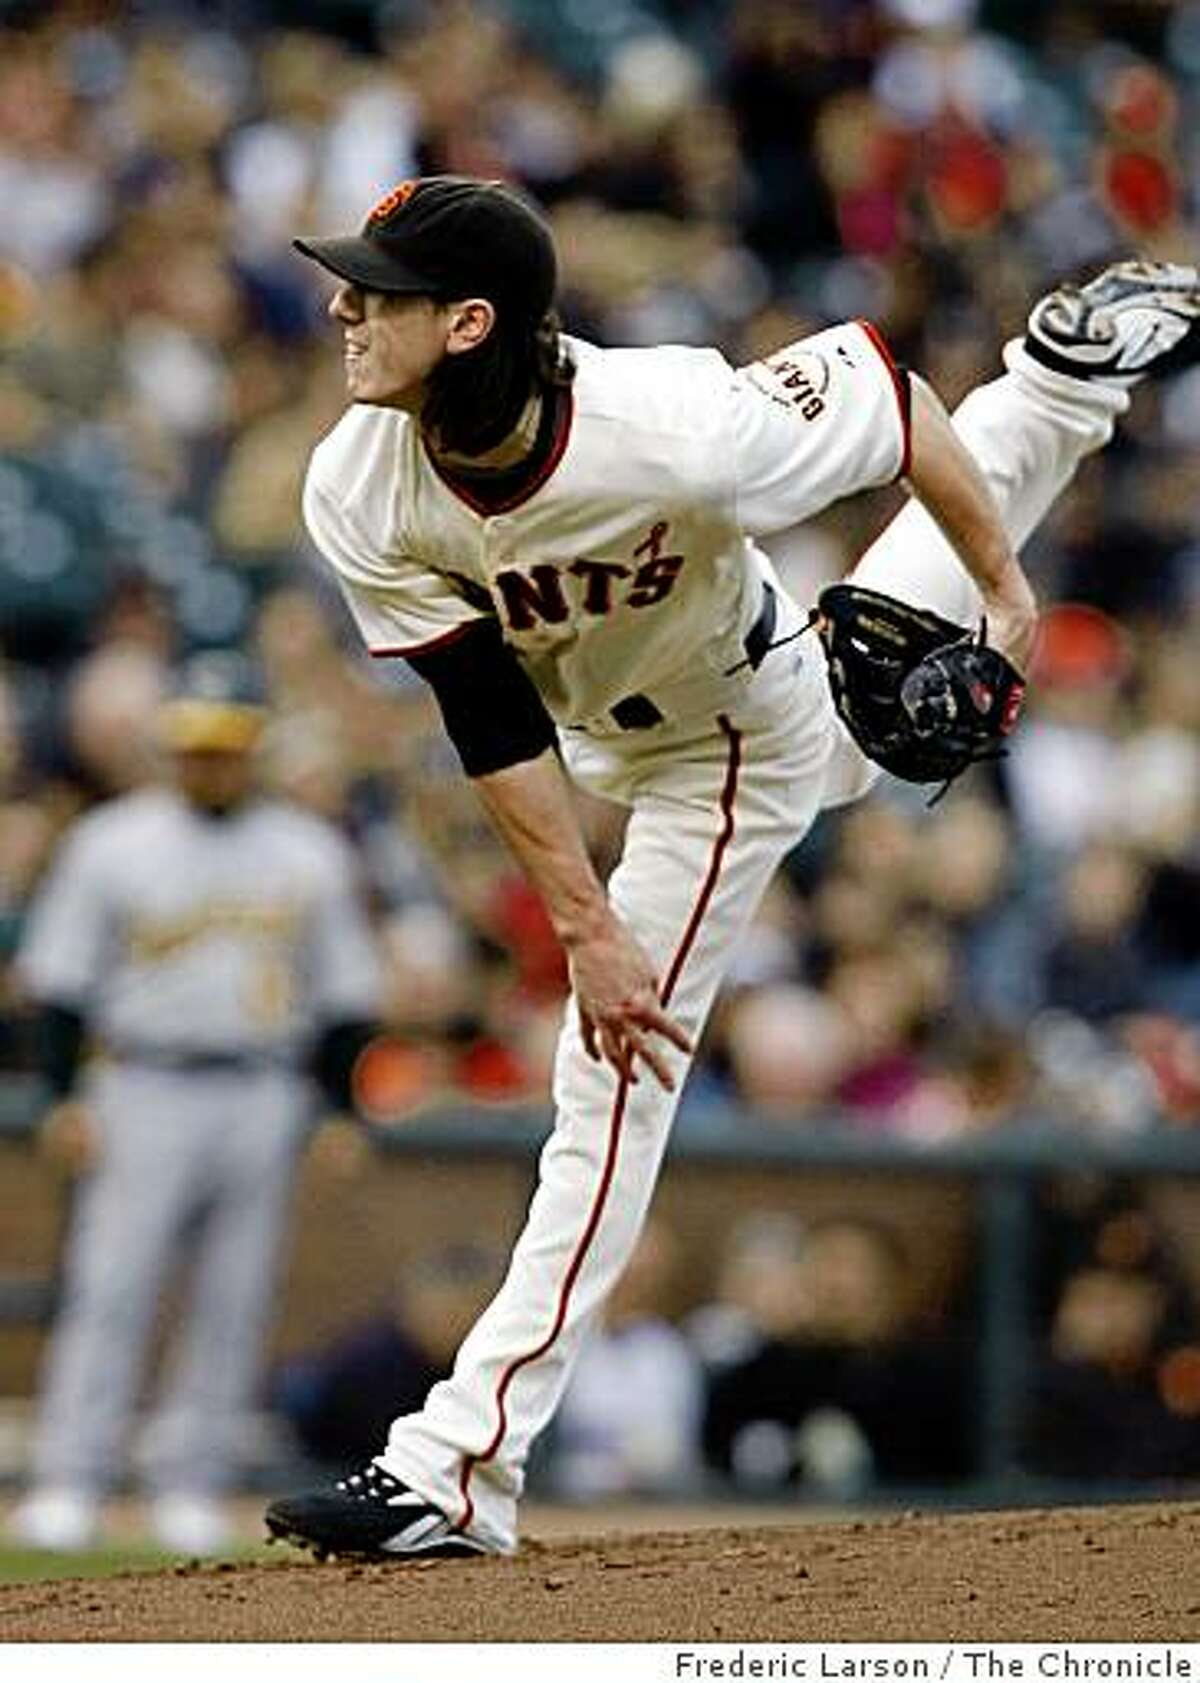 Tim Lincecum pitched a complete game shut out against the Oakland Athletics at AT&T Park in San Francisco, Calif., on June 12, 2009.